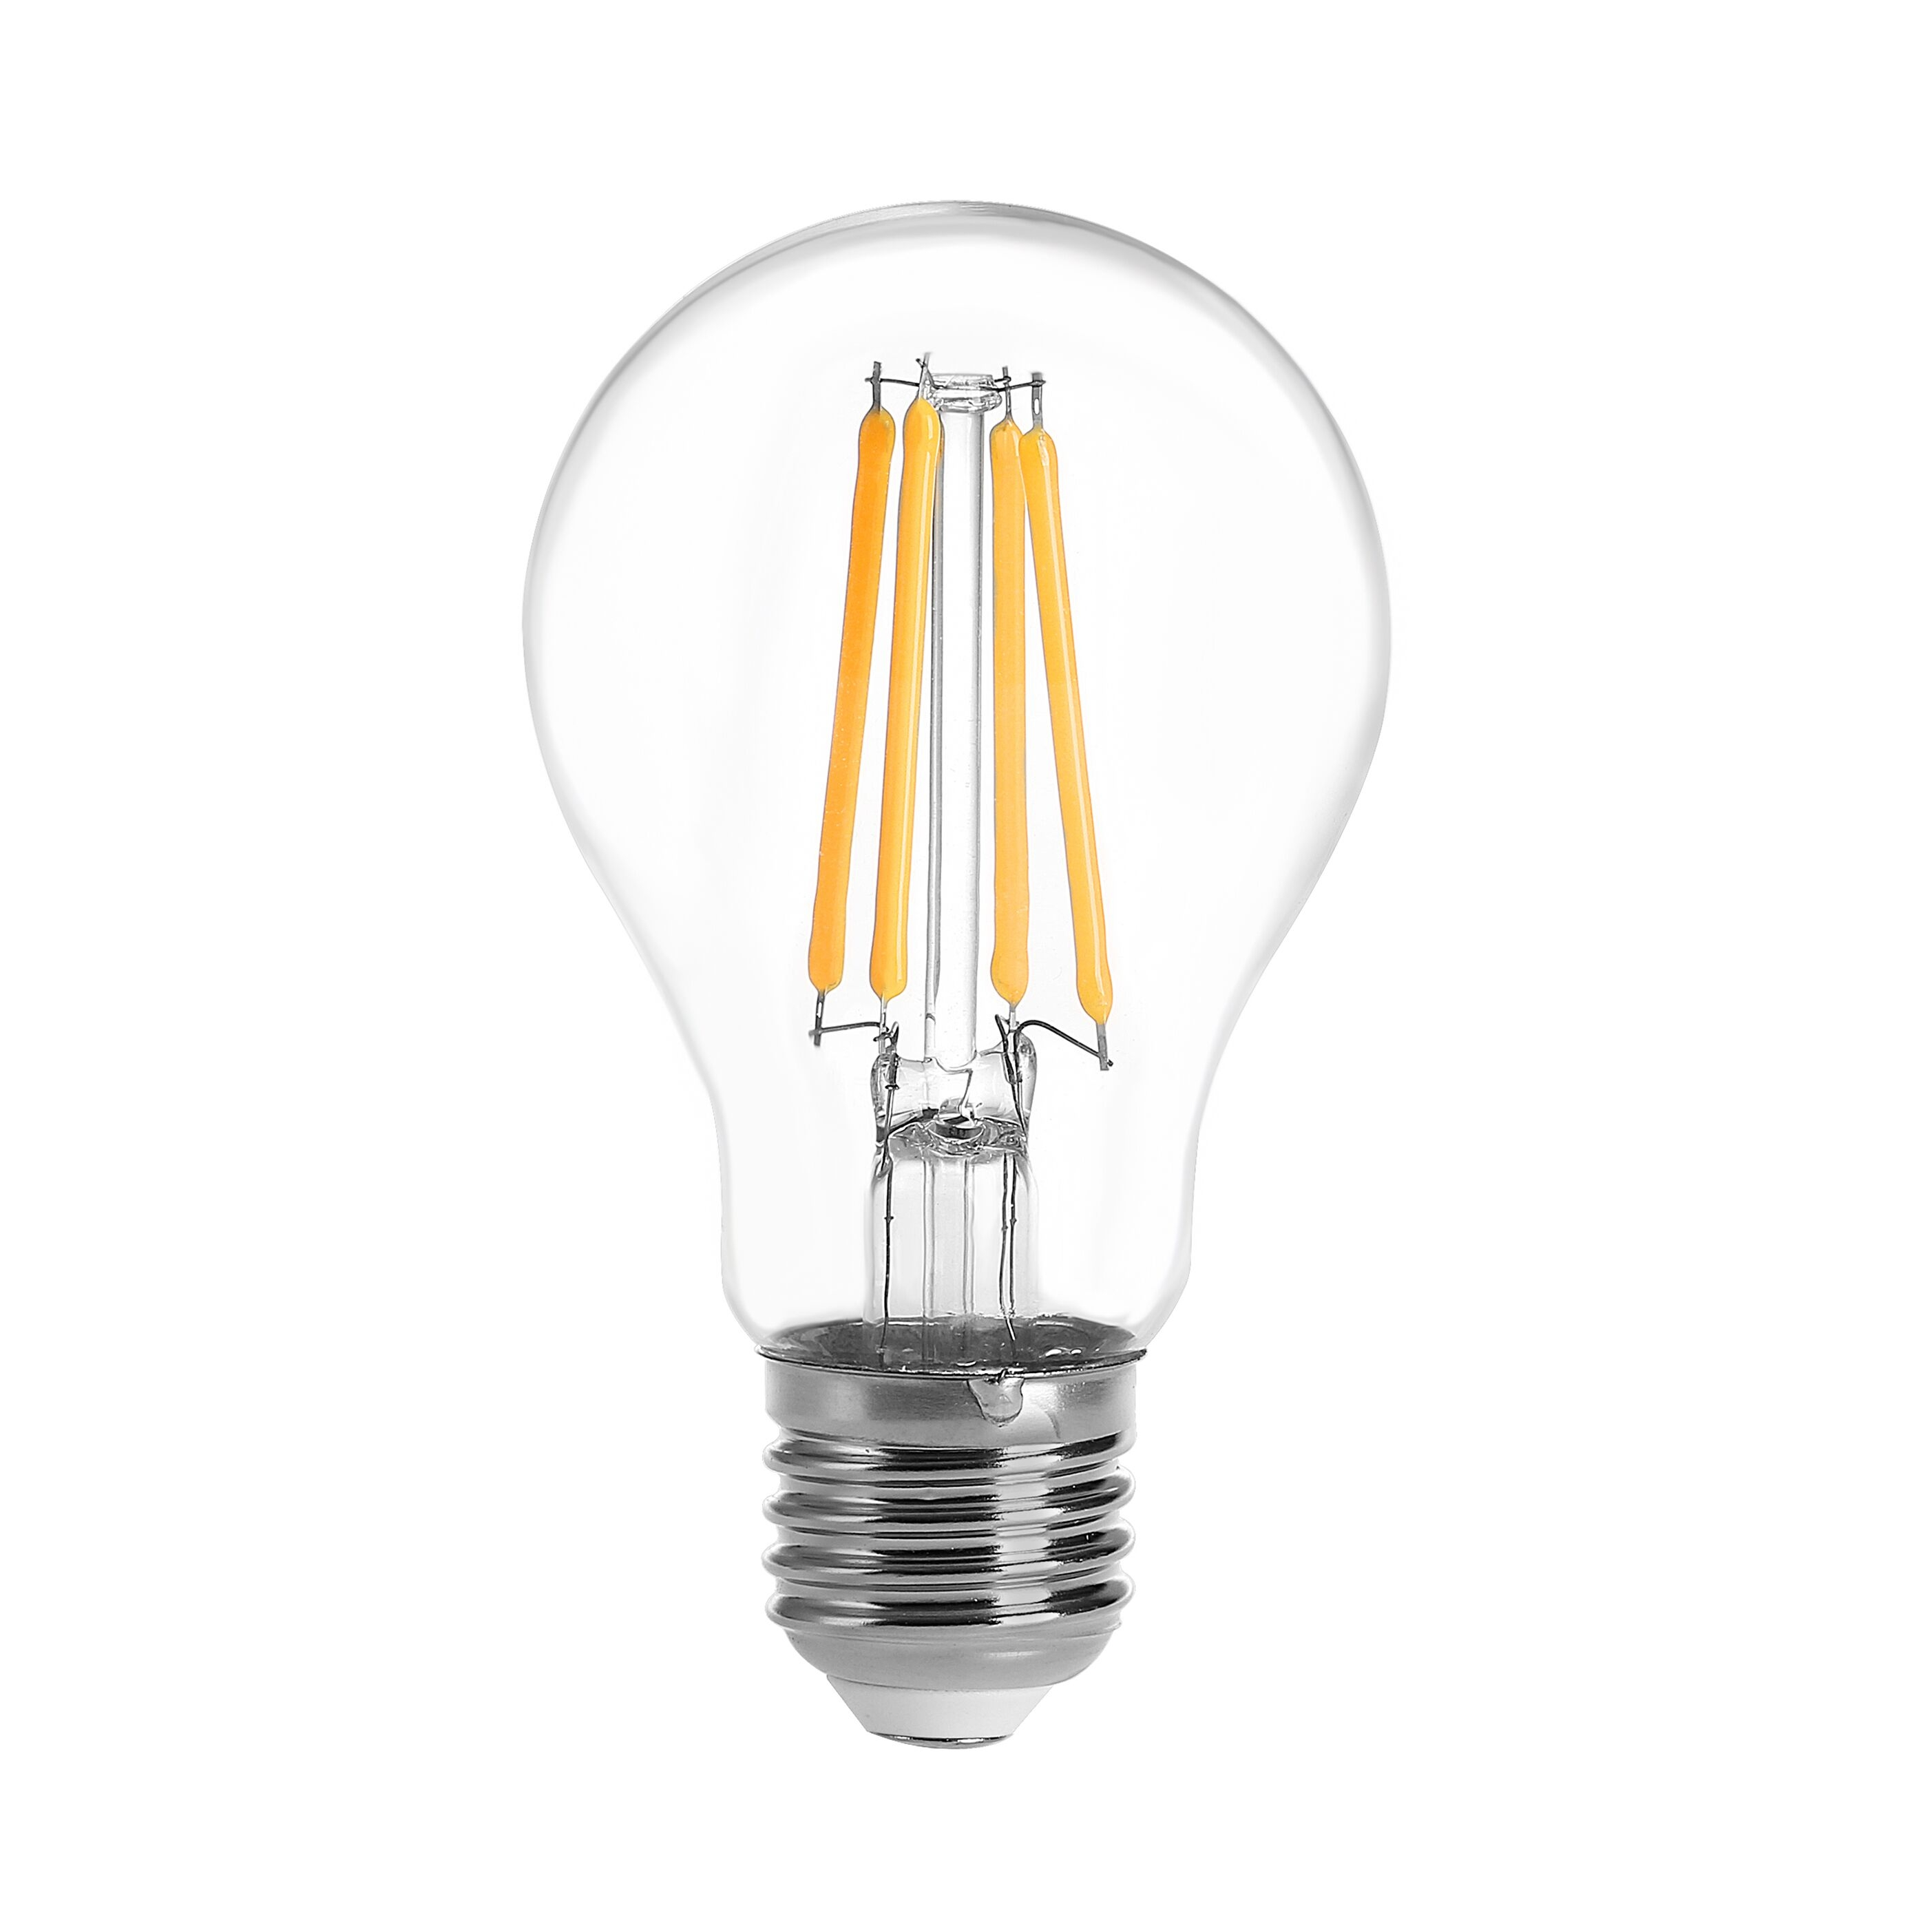 Led Filament Light Bulb Gls A19 A60 Made In China Filament Led Lamp Manufacturer And Supplier